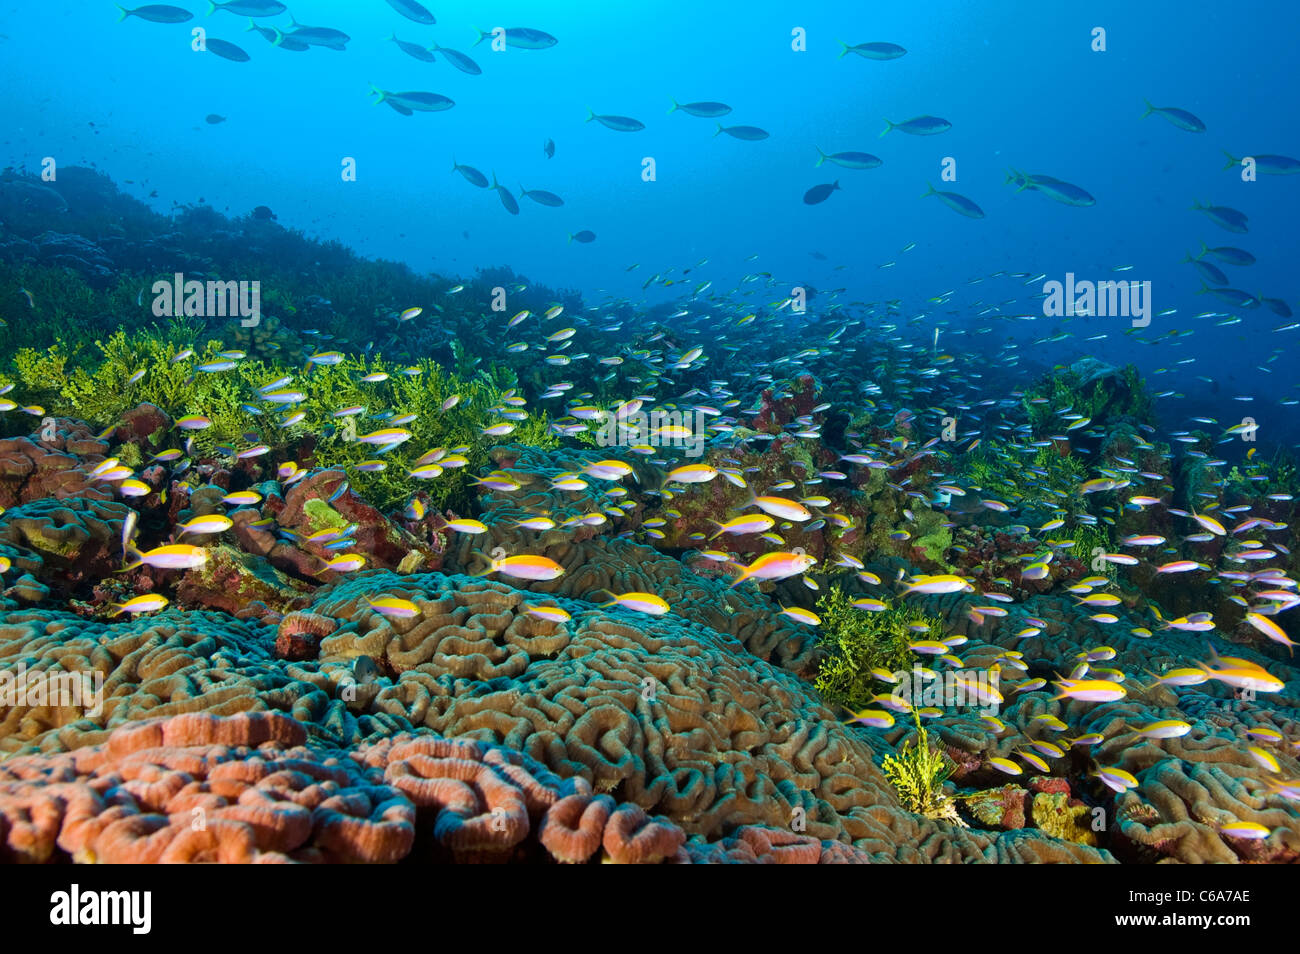 Reef scenic Kribati South East Pacific - Stock Image